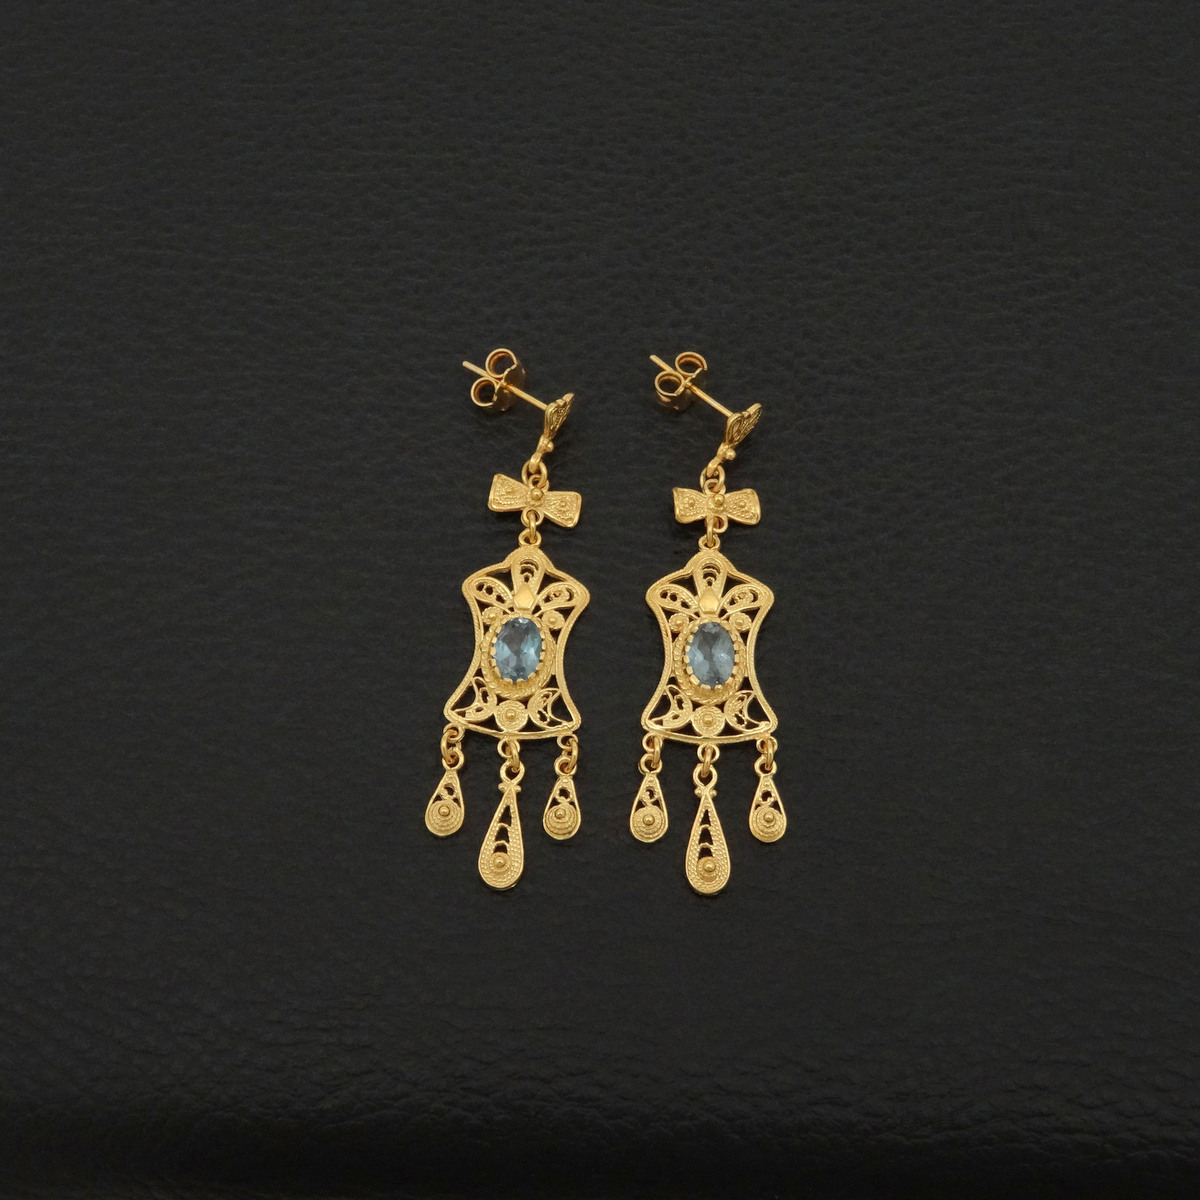 22ct gold plated earrings 925 sterling silver